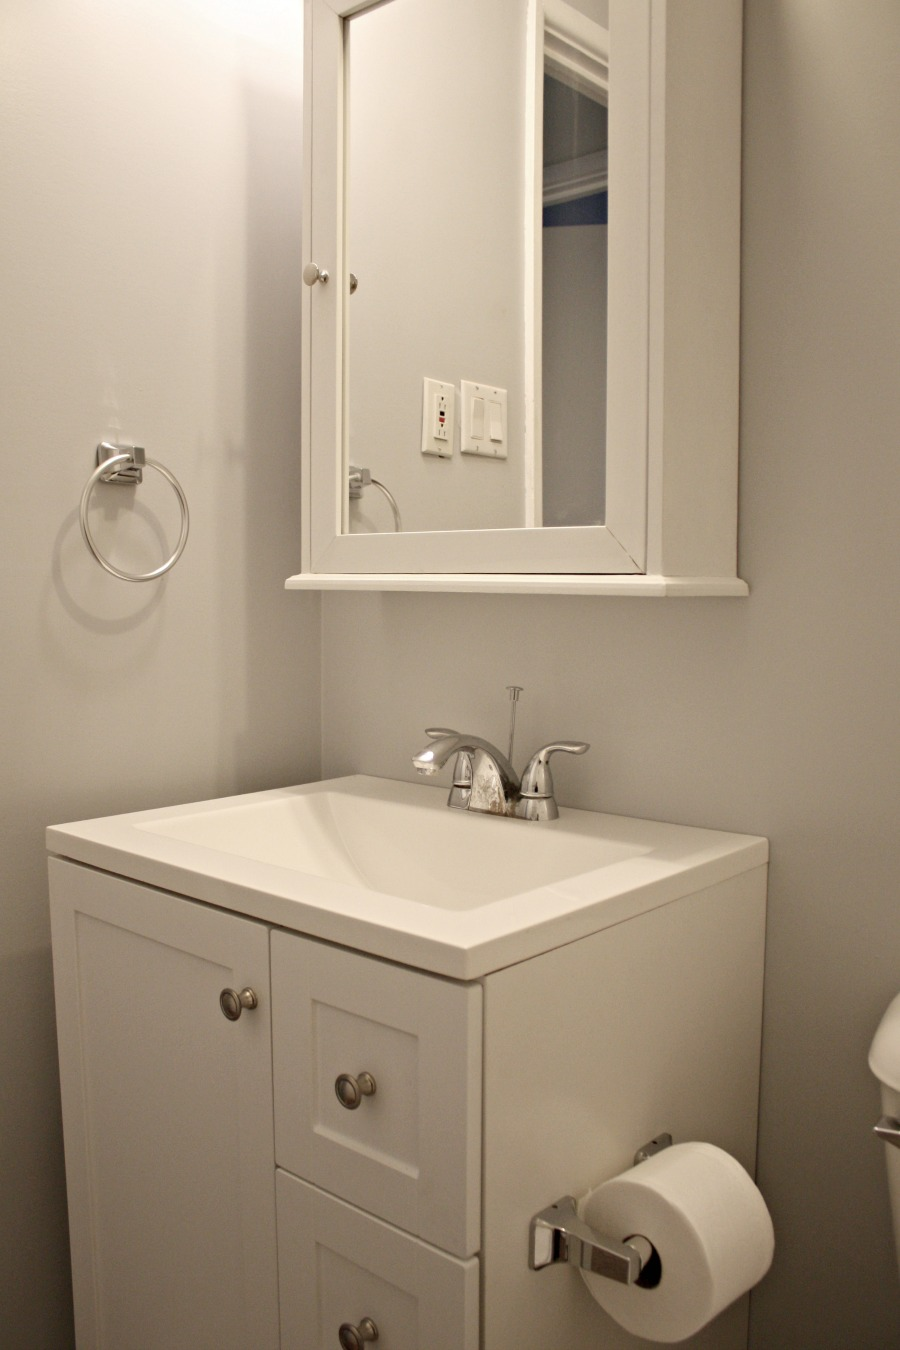 Vanity and sink after